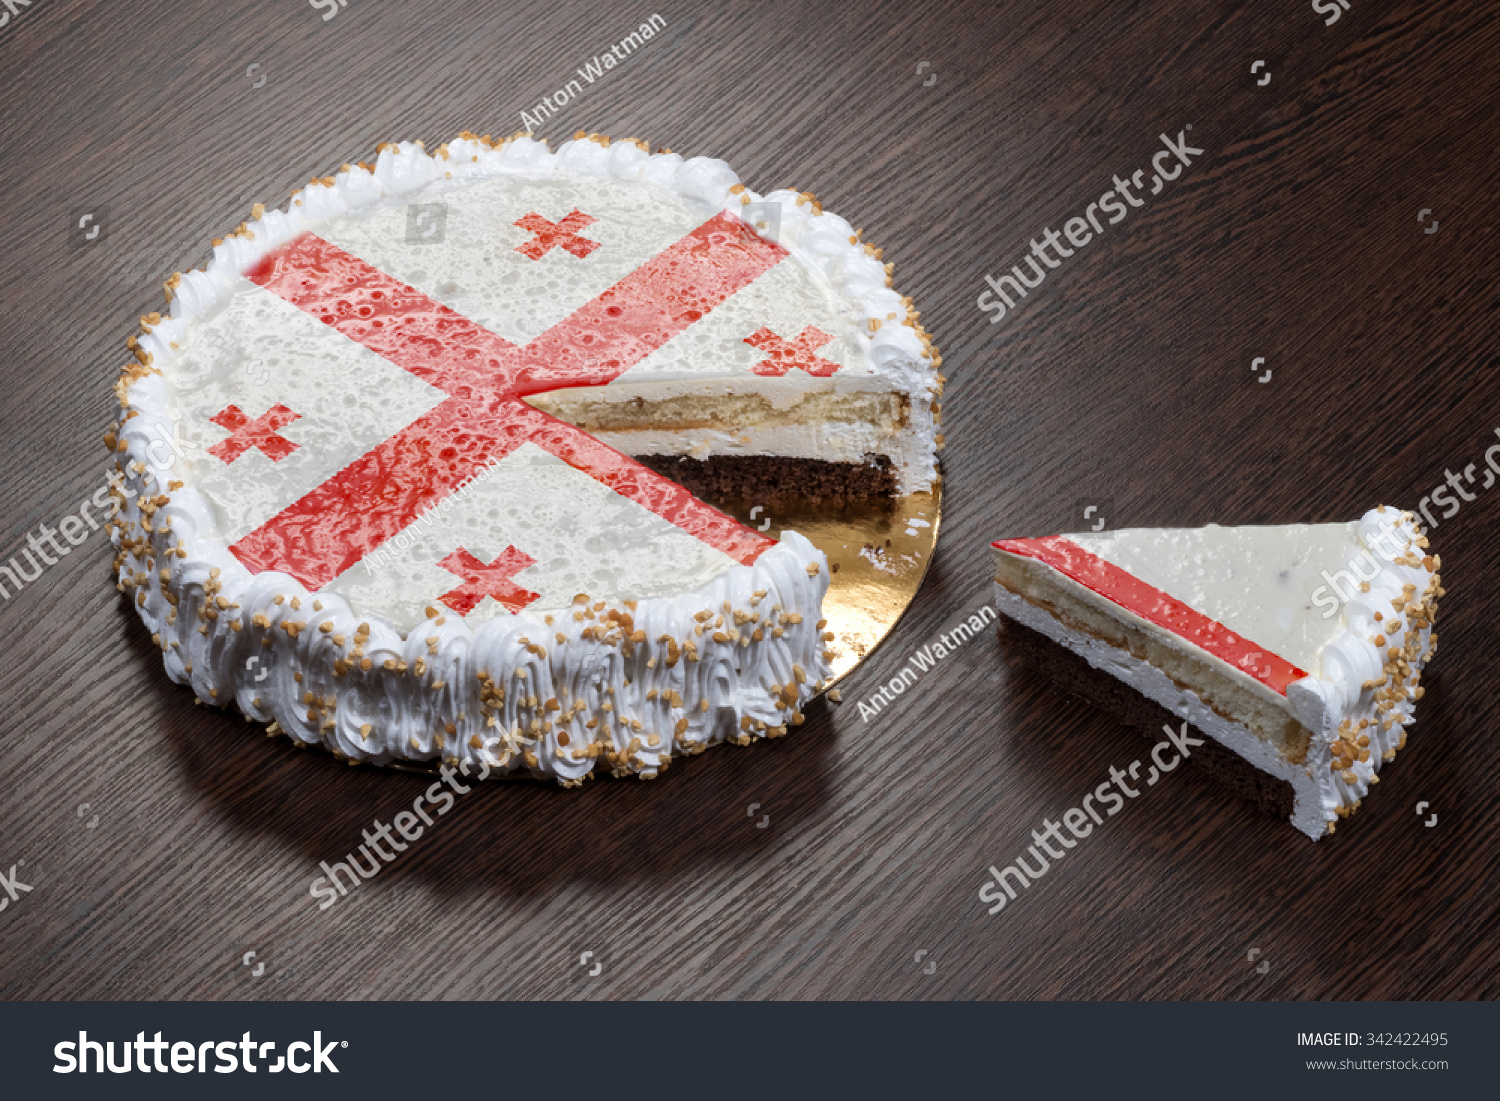 Royalty Free The Symbol Of War And Separatism A 342422495 Stock